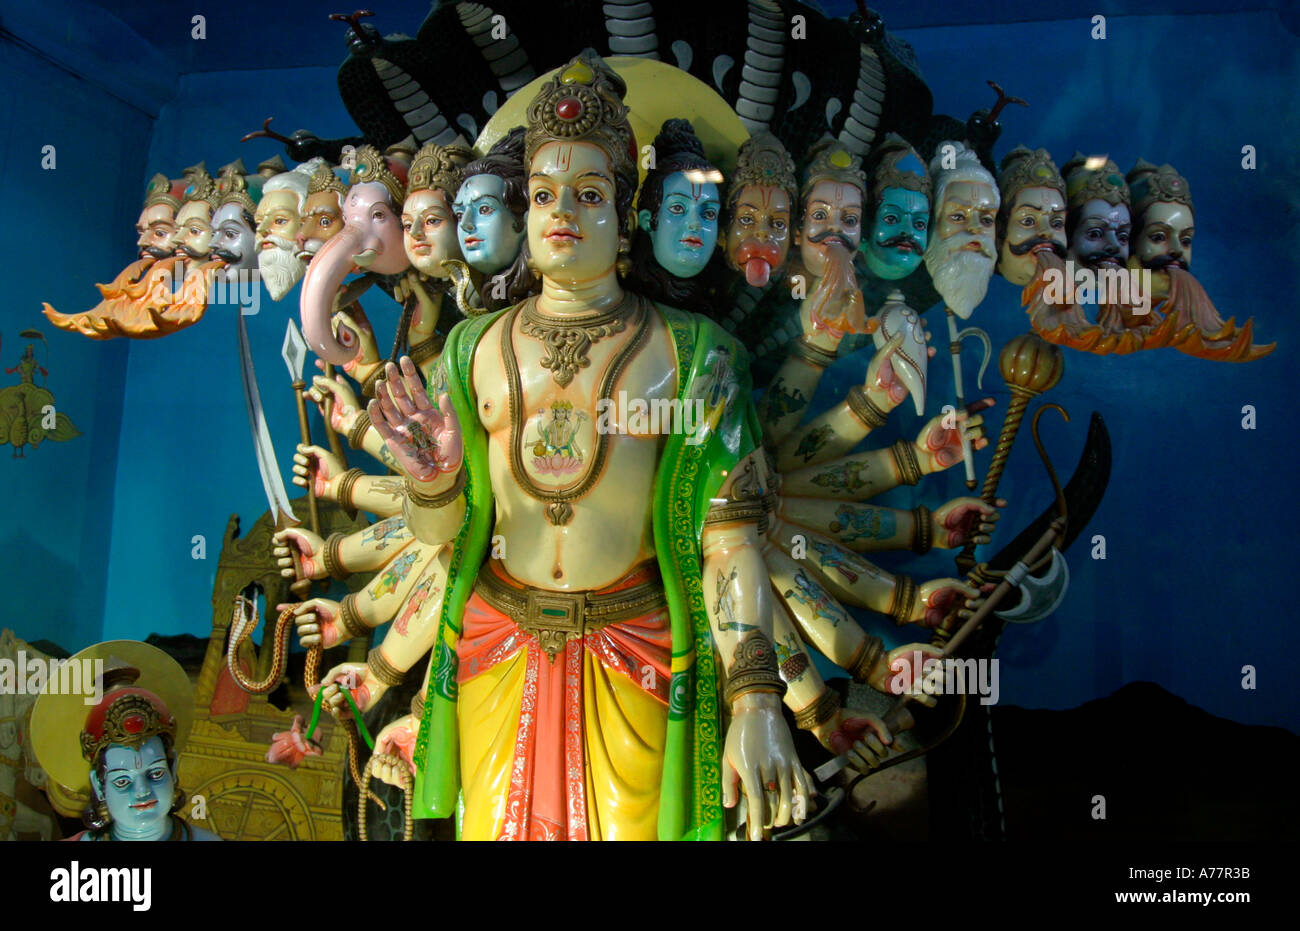 indian statue of hindu gods - Stock Image